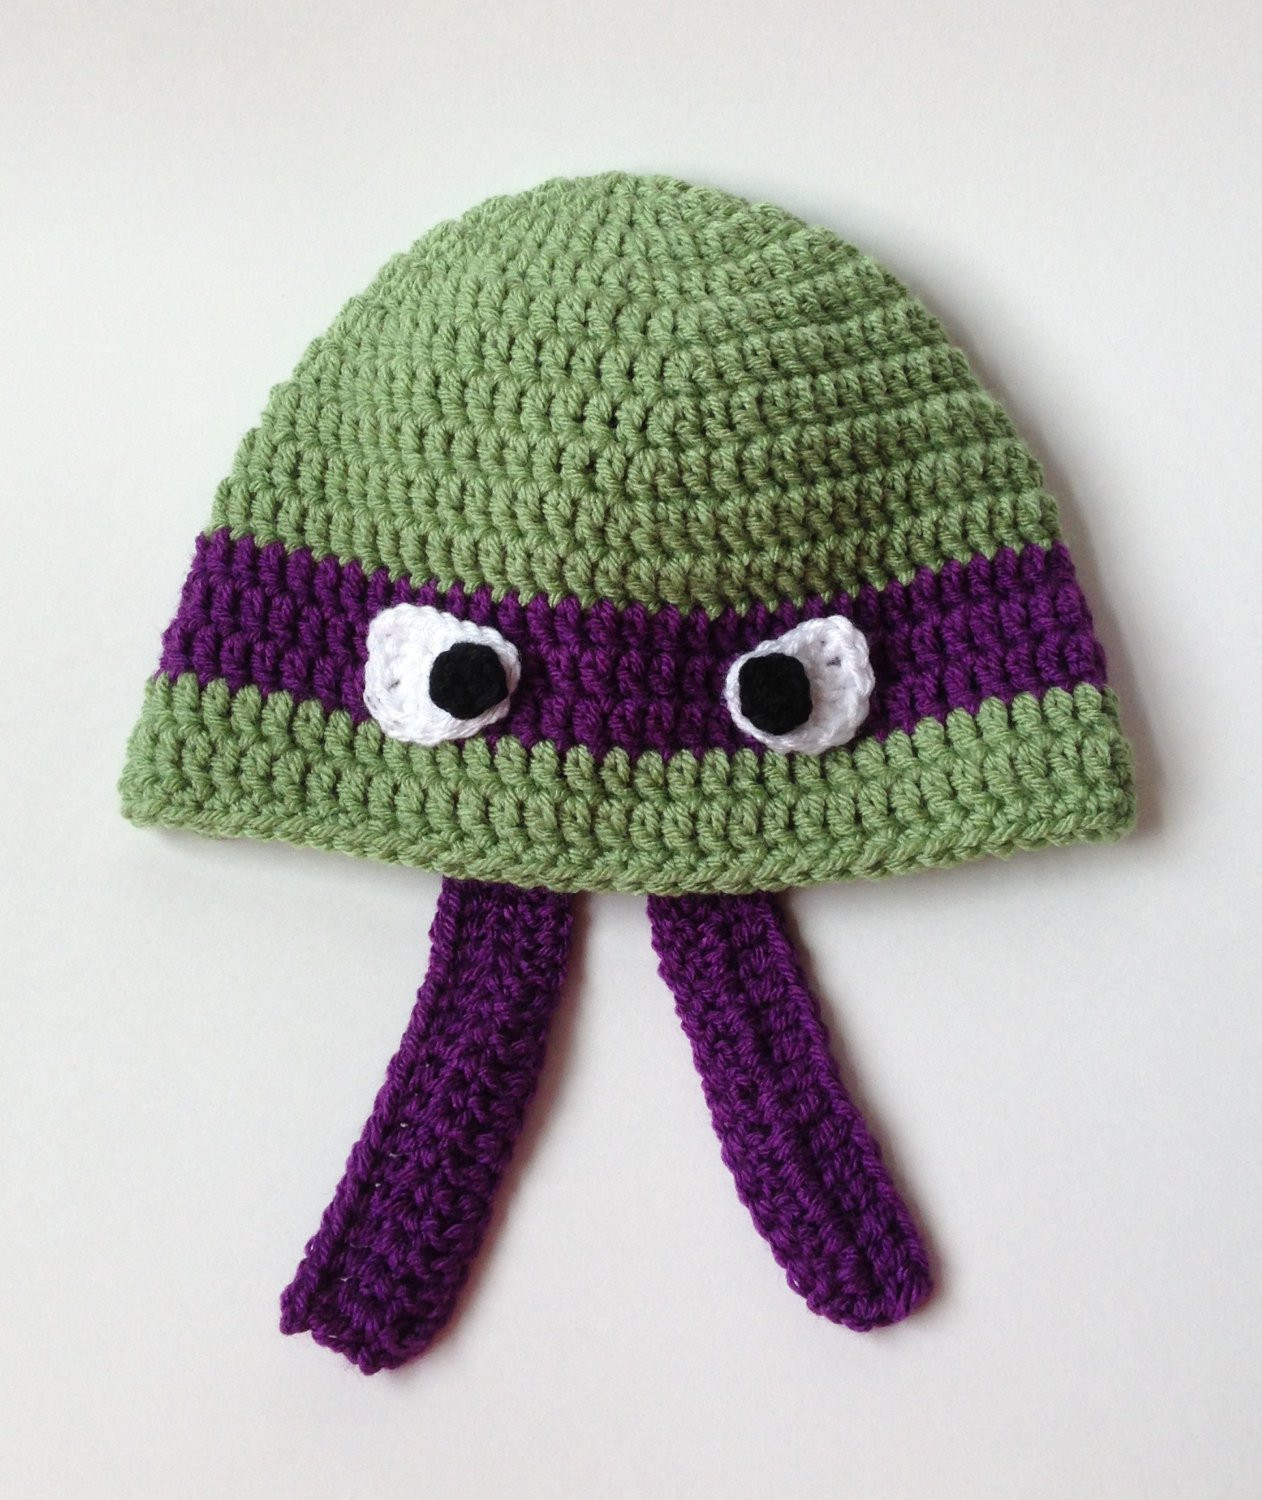 Crochet Ninja Turtle Hat Elegant Ninja Turtle Hat Crochet Hat Ninja Turtle Crochet Ninja Of Innovative 46 Pictures Crochet Ninja Turtle Hat